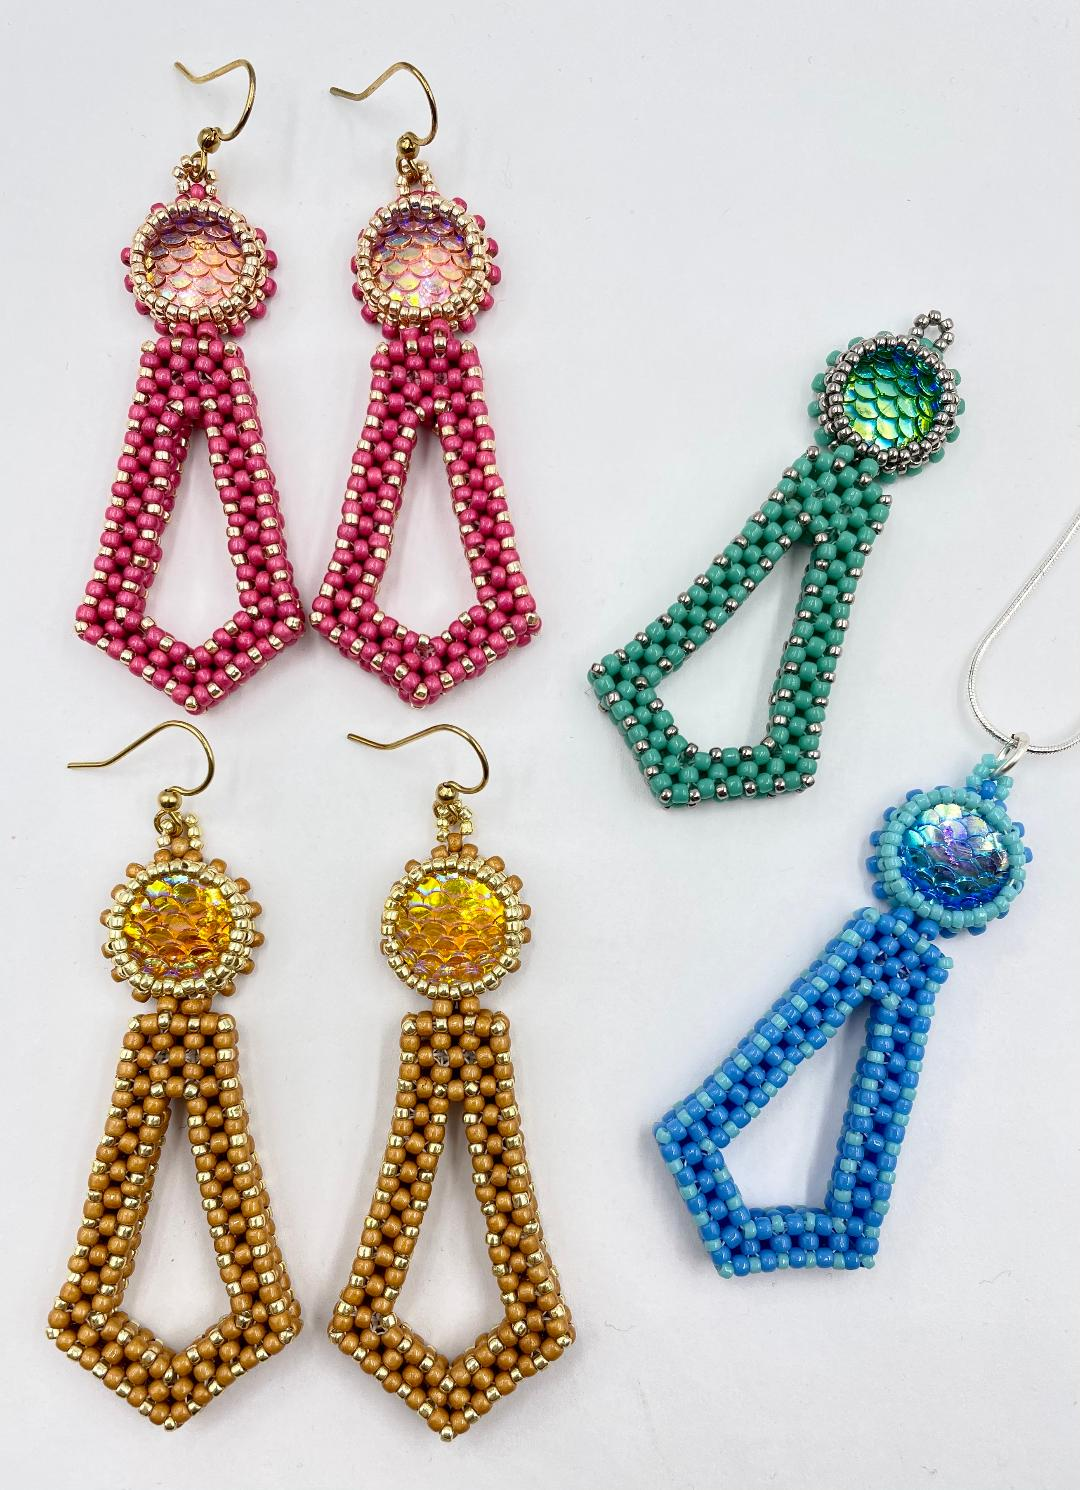 Four Color Choices for the Mermaid Tail Earrings